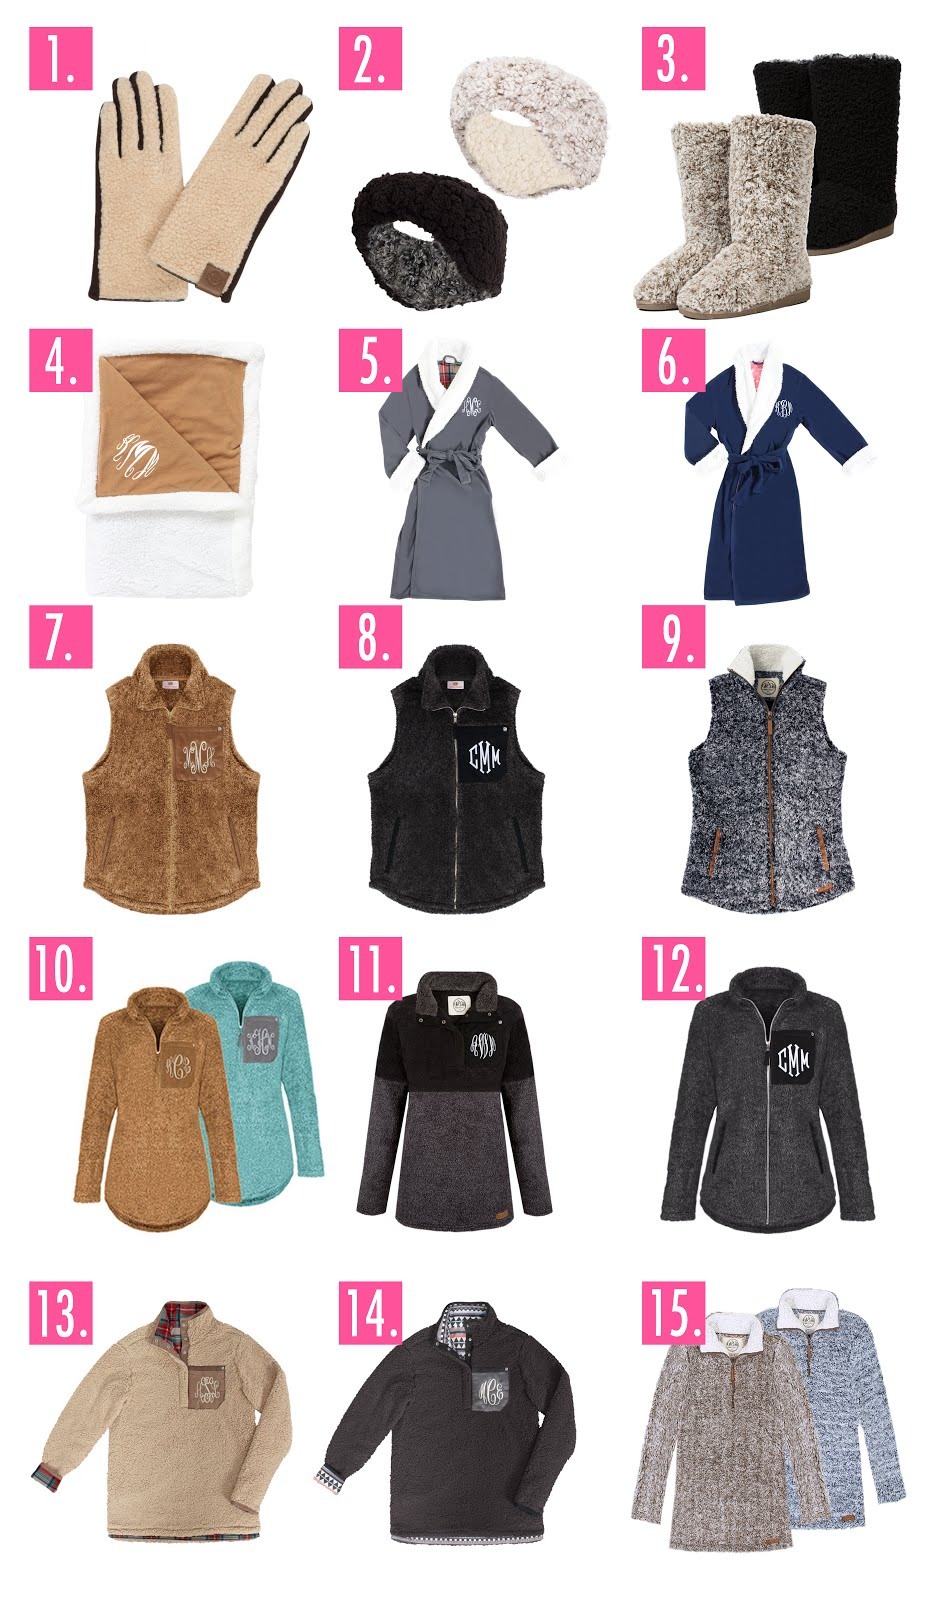 monogrammed sherpa clothing and accessories